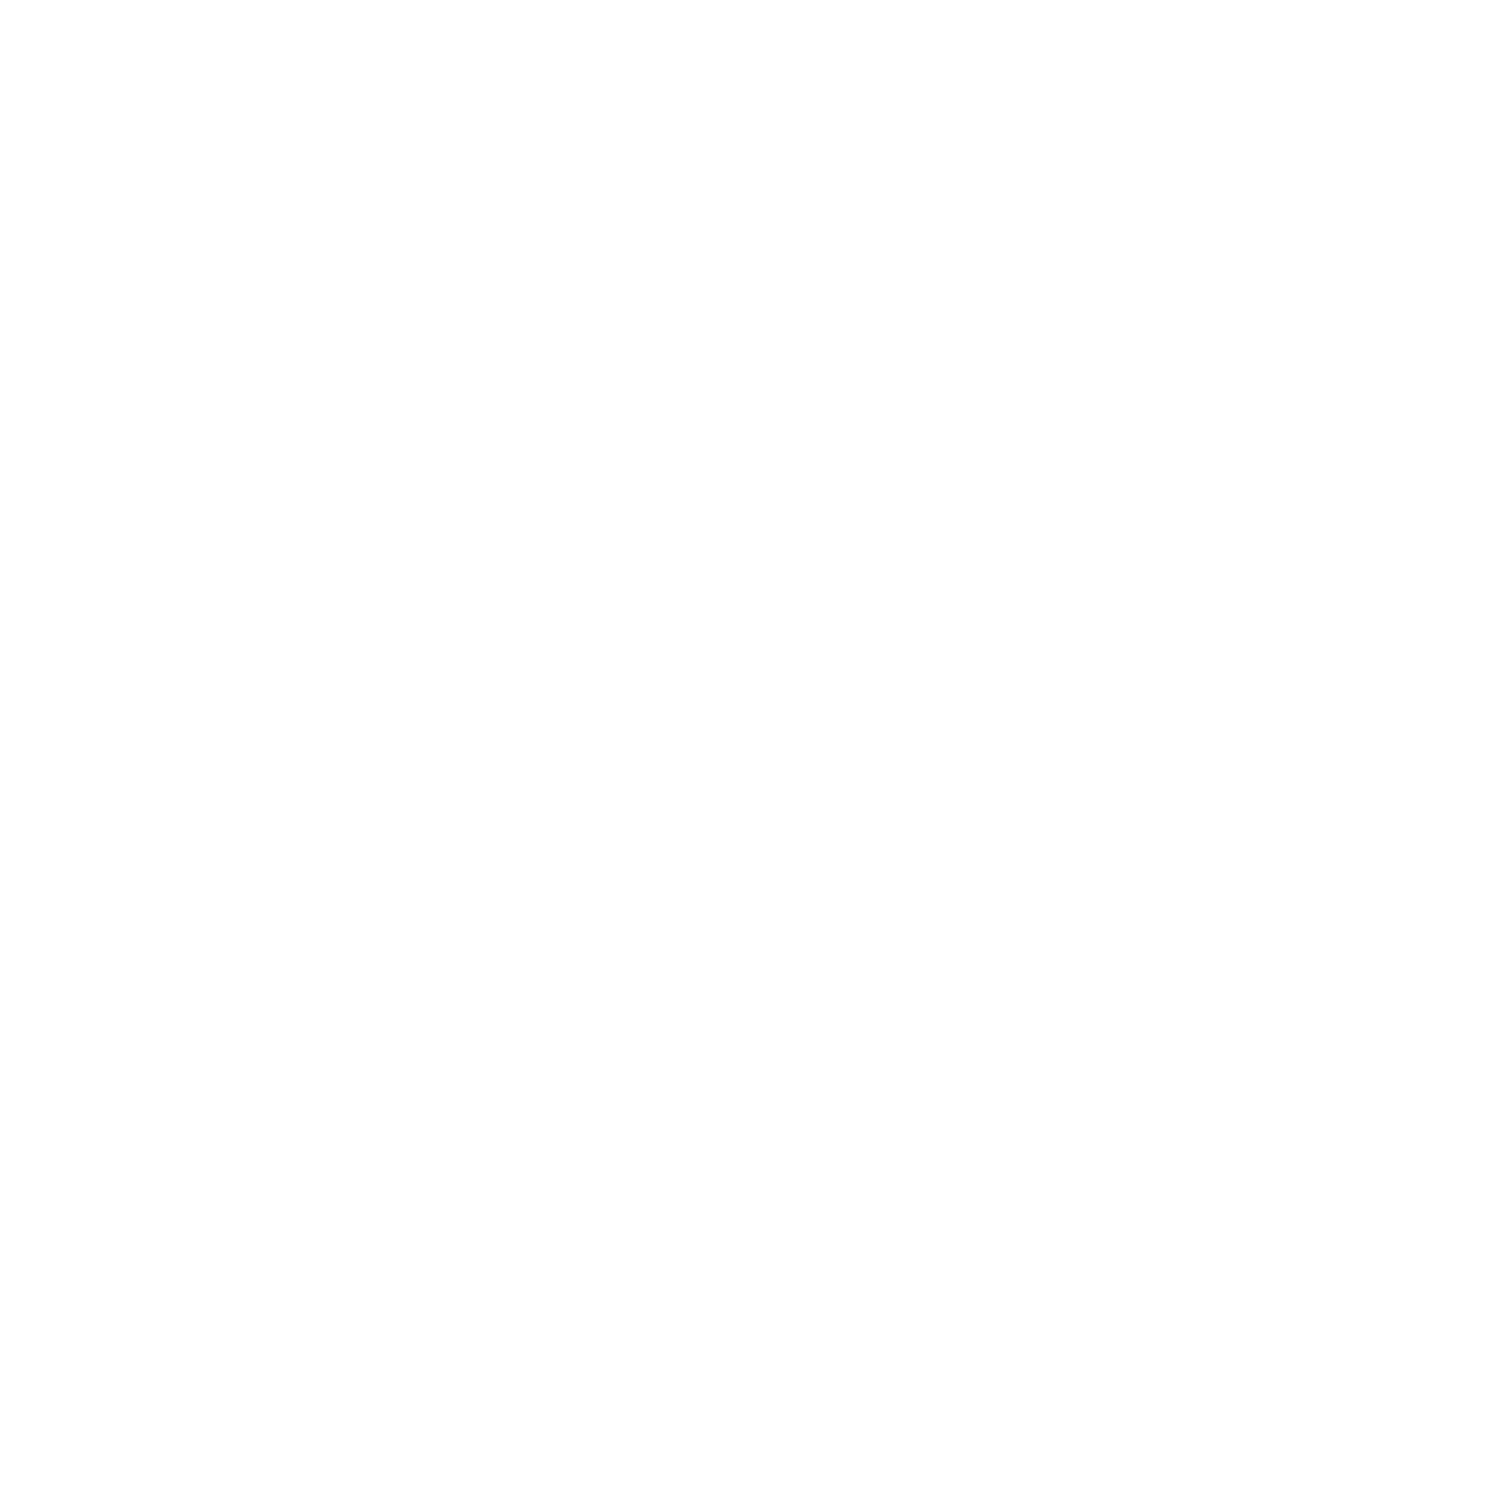 Photos and Potatoes